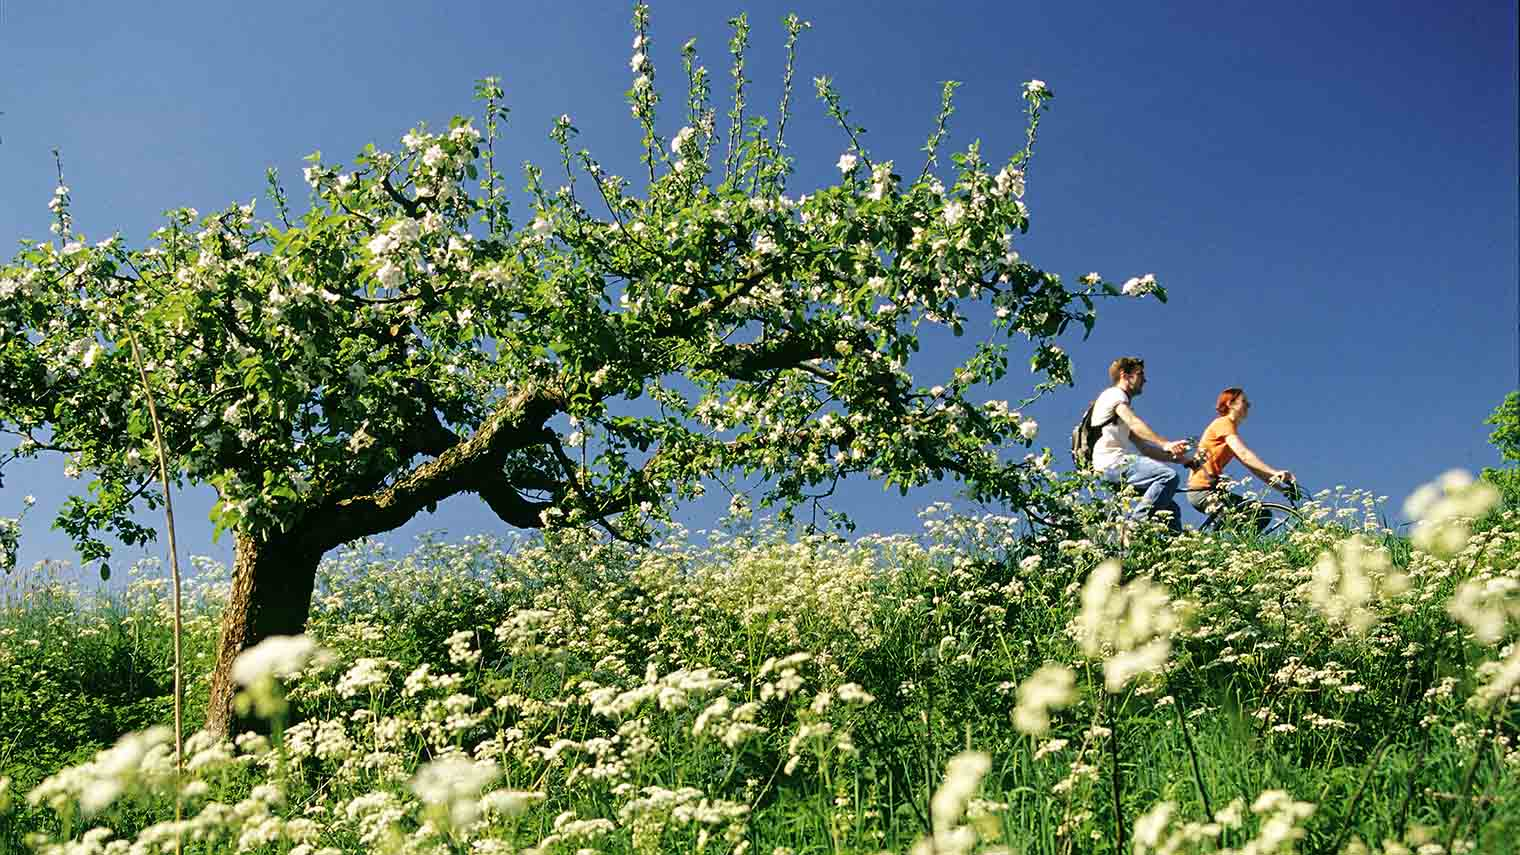 Netherlands, Tricht. Cyclist passing a blossom tree on a dyke along the Linge river.